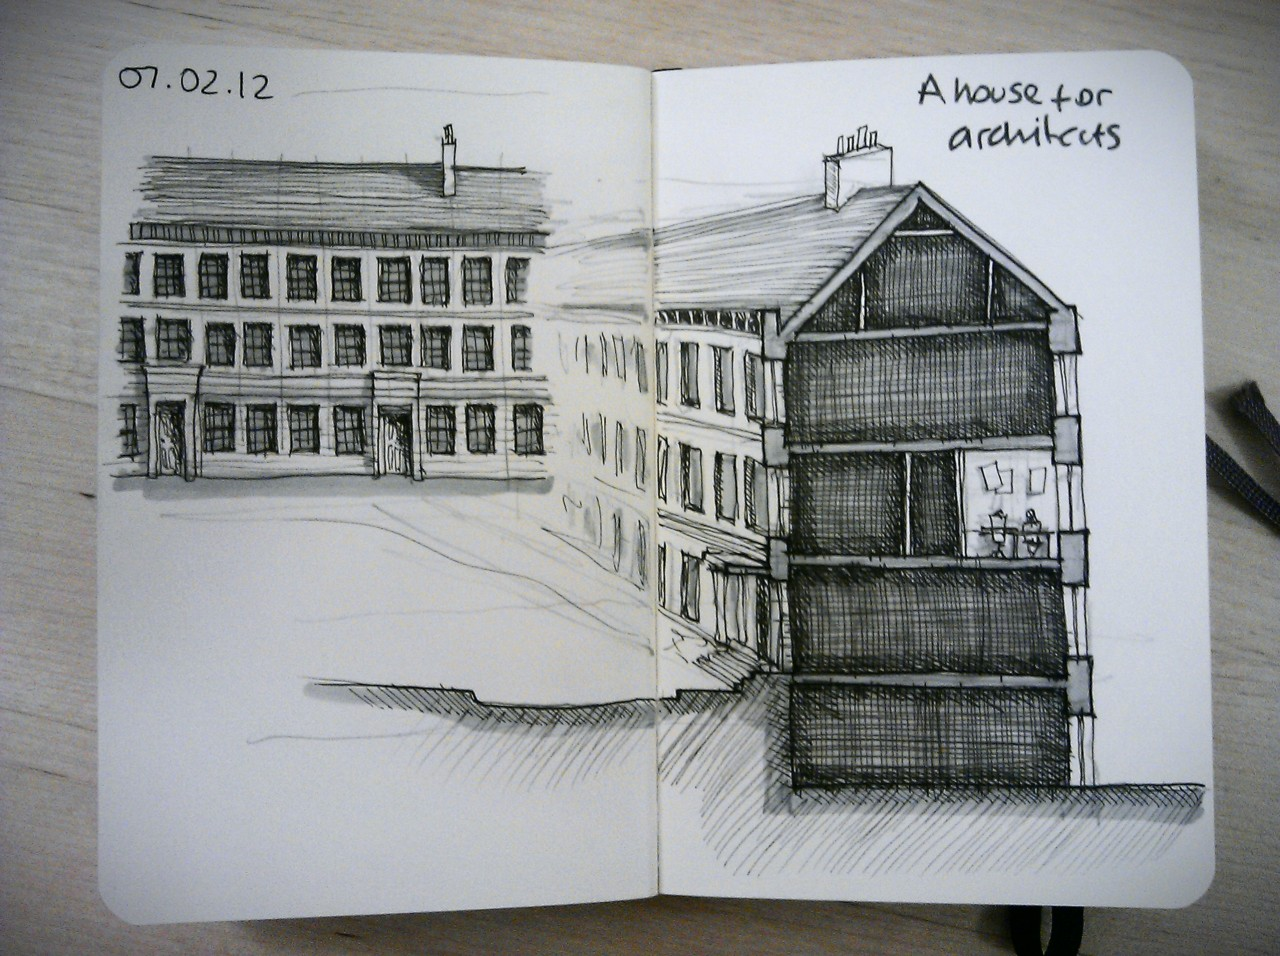 28 drawings later … day 7 … a house for architects (I've spent quite a lot of time here this week)